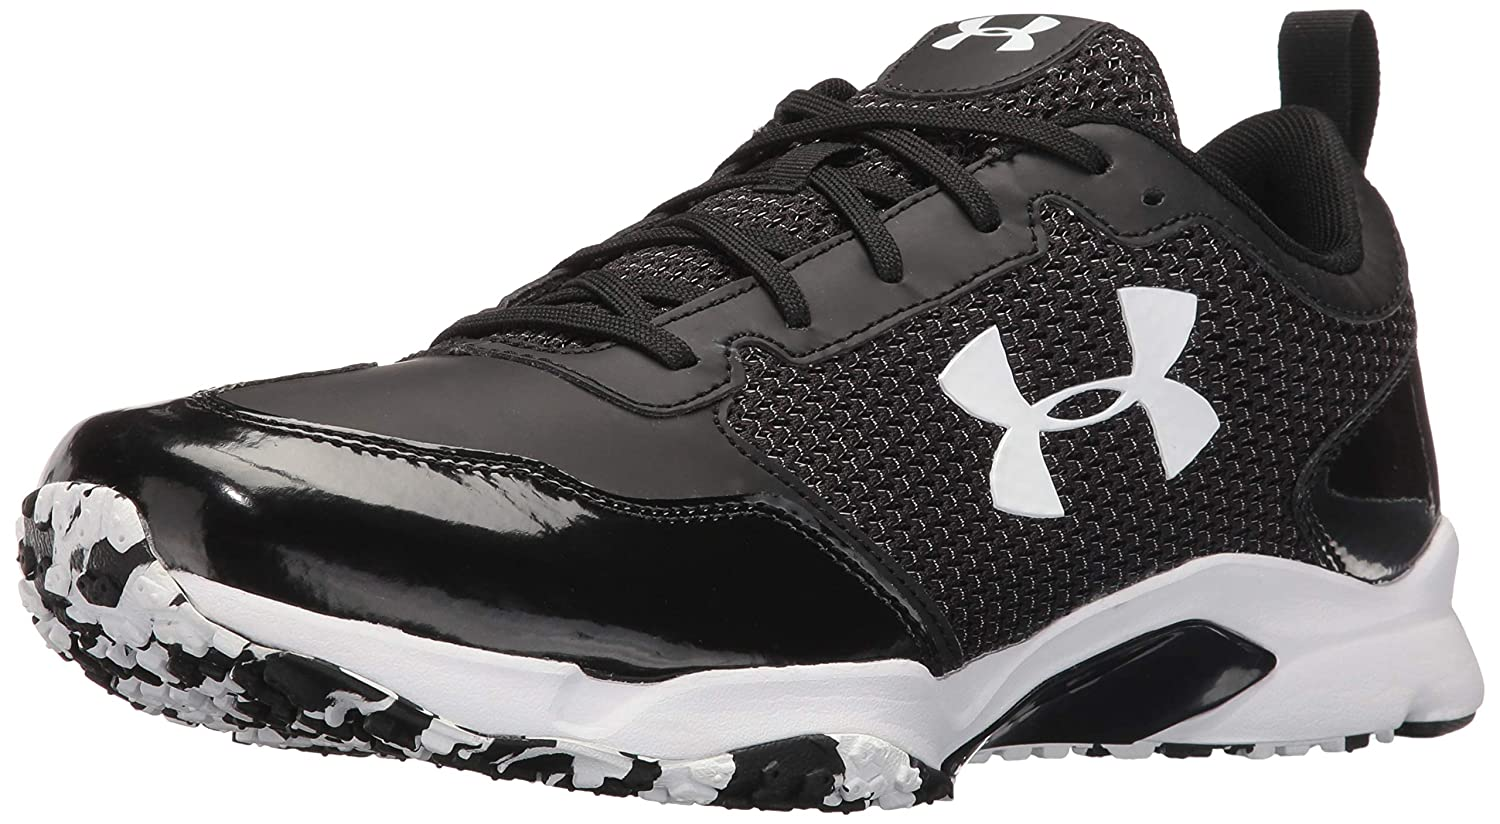 Under Armour Mens Ultimate Turf Trainer